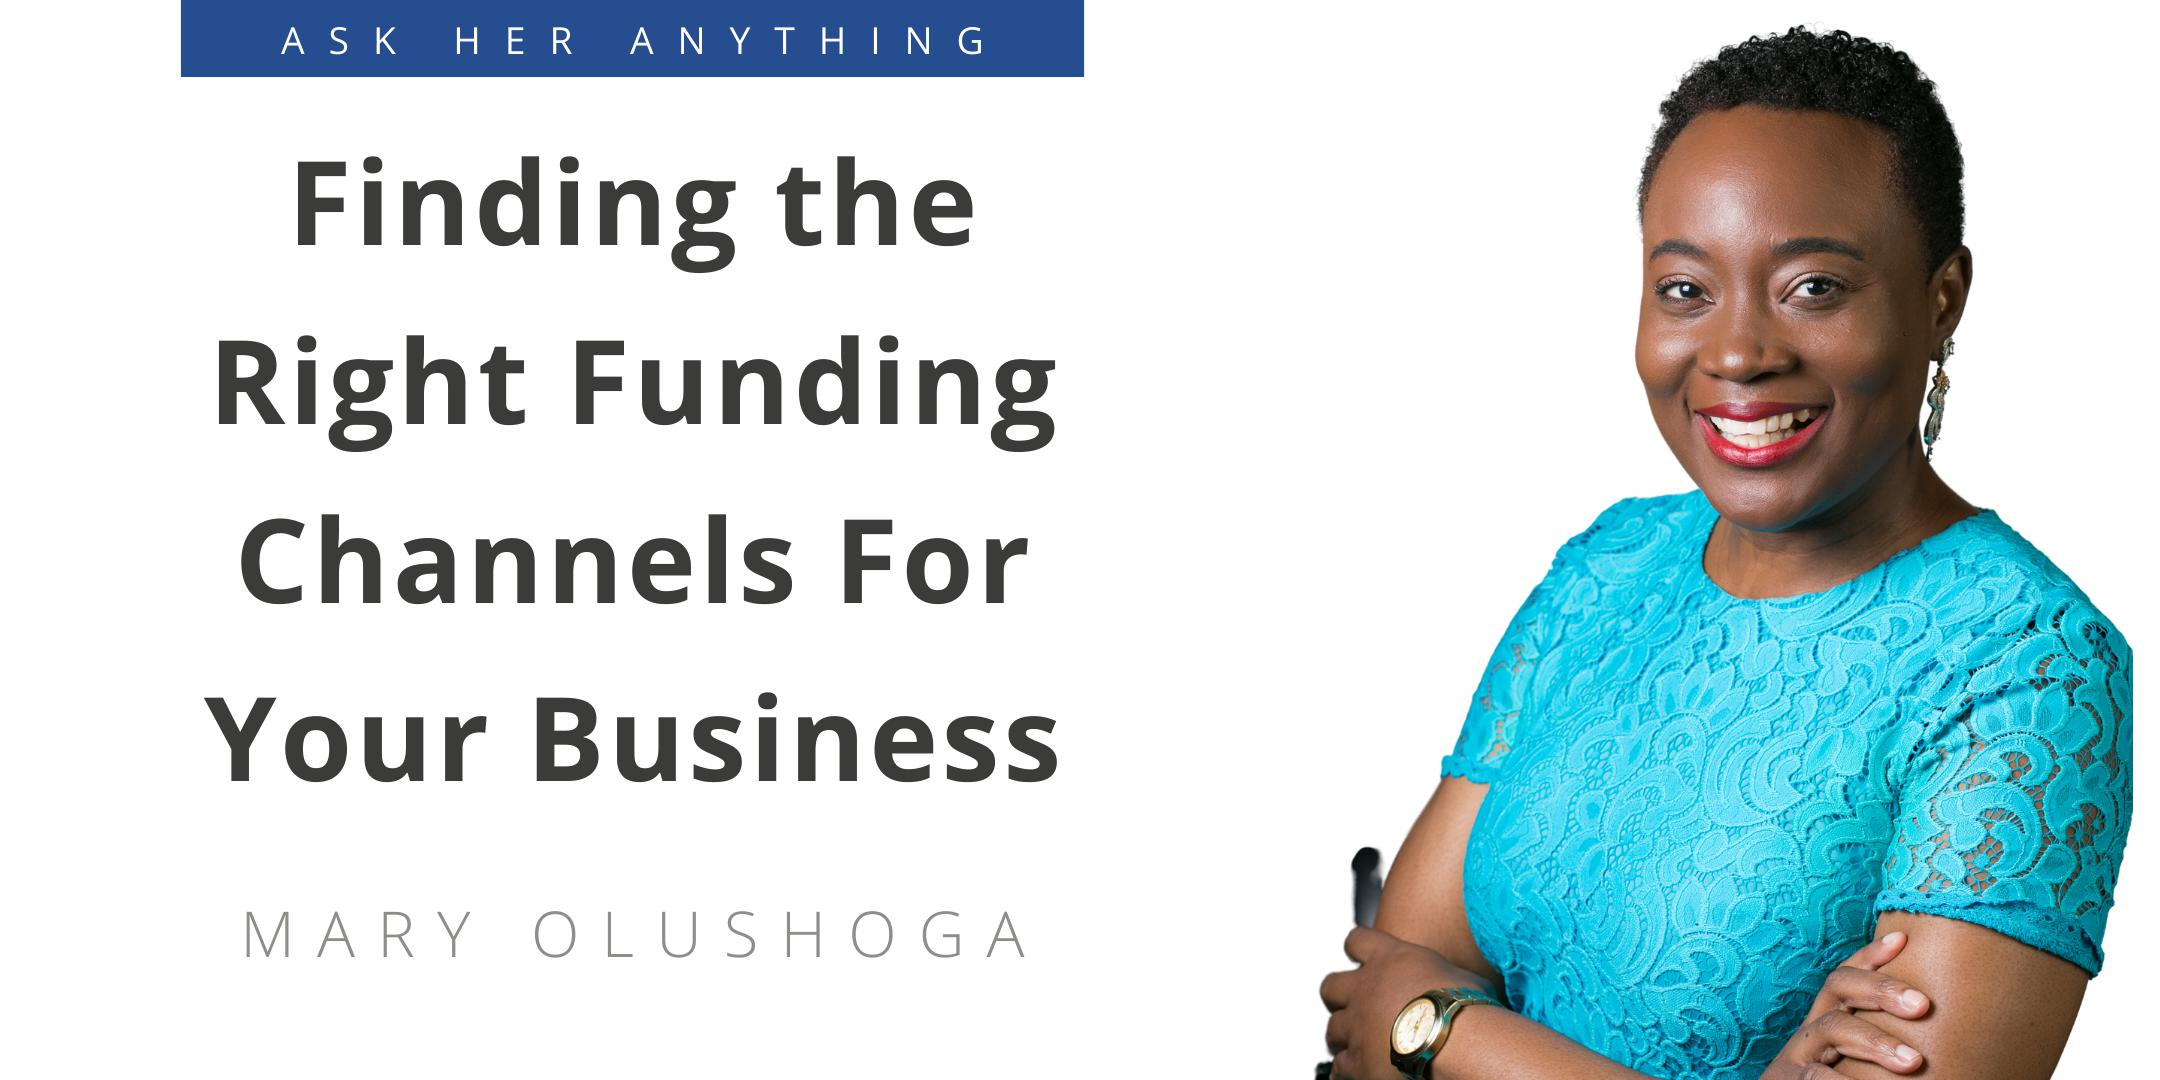 Finding the Right Funding Channels For Your Business